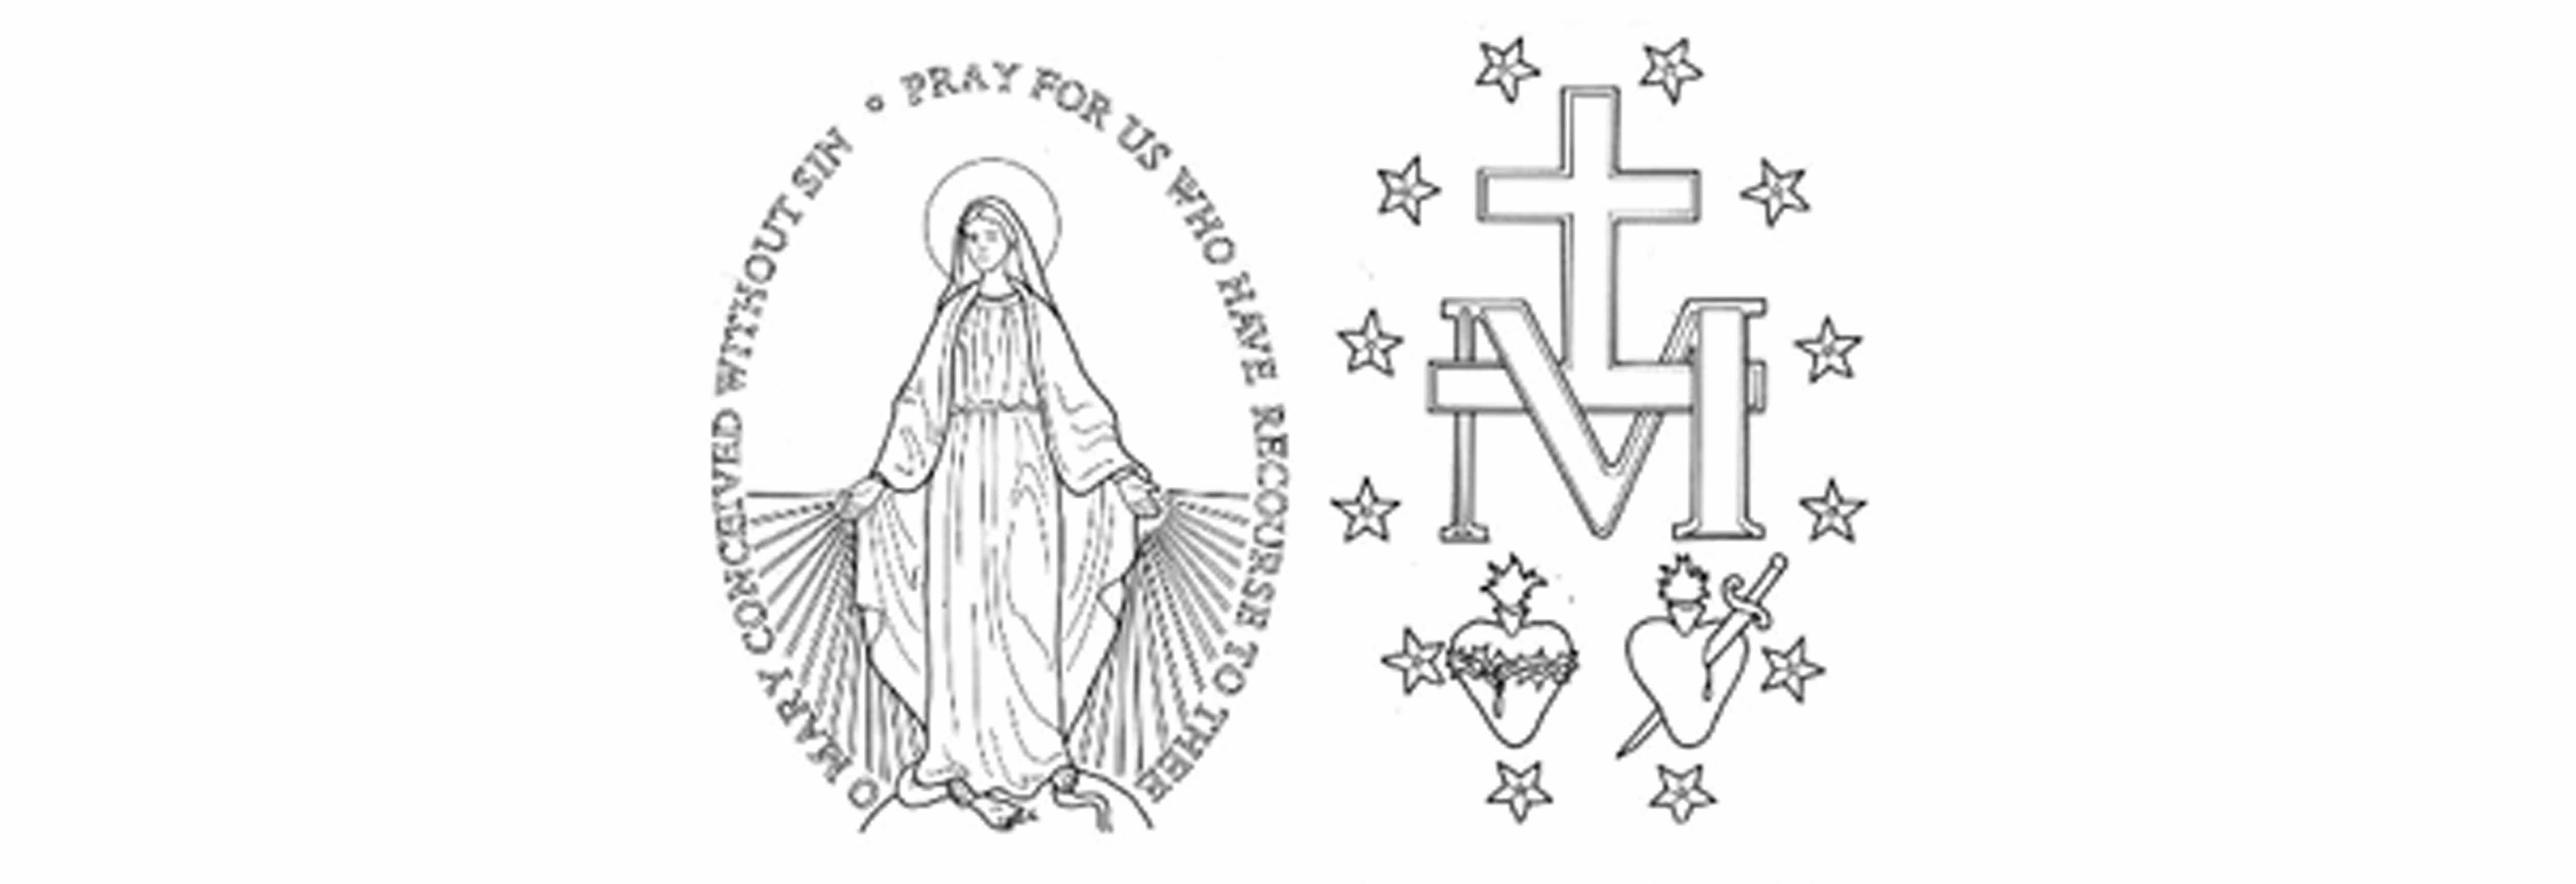 miraculous medal version 3